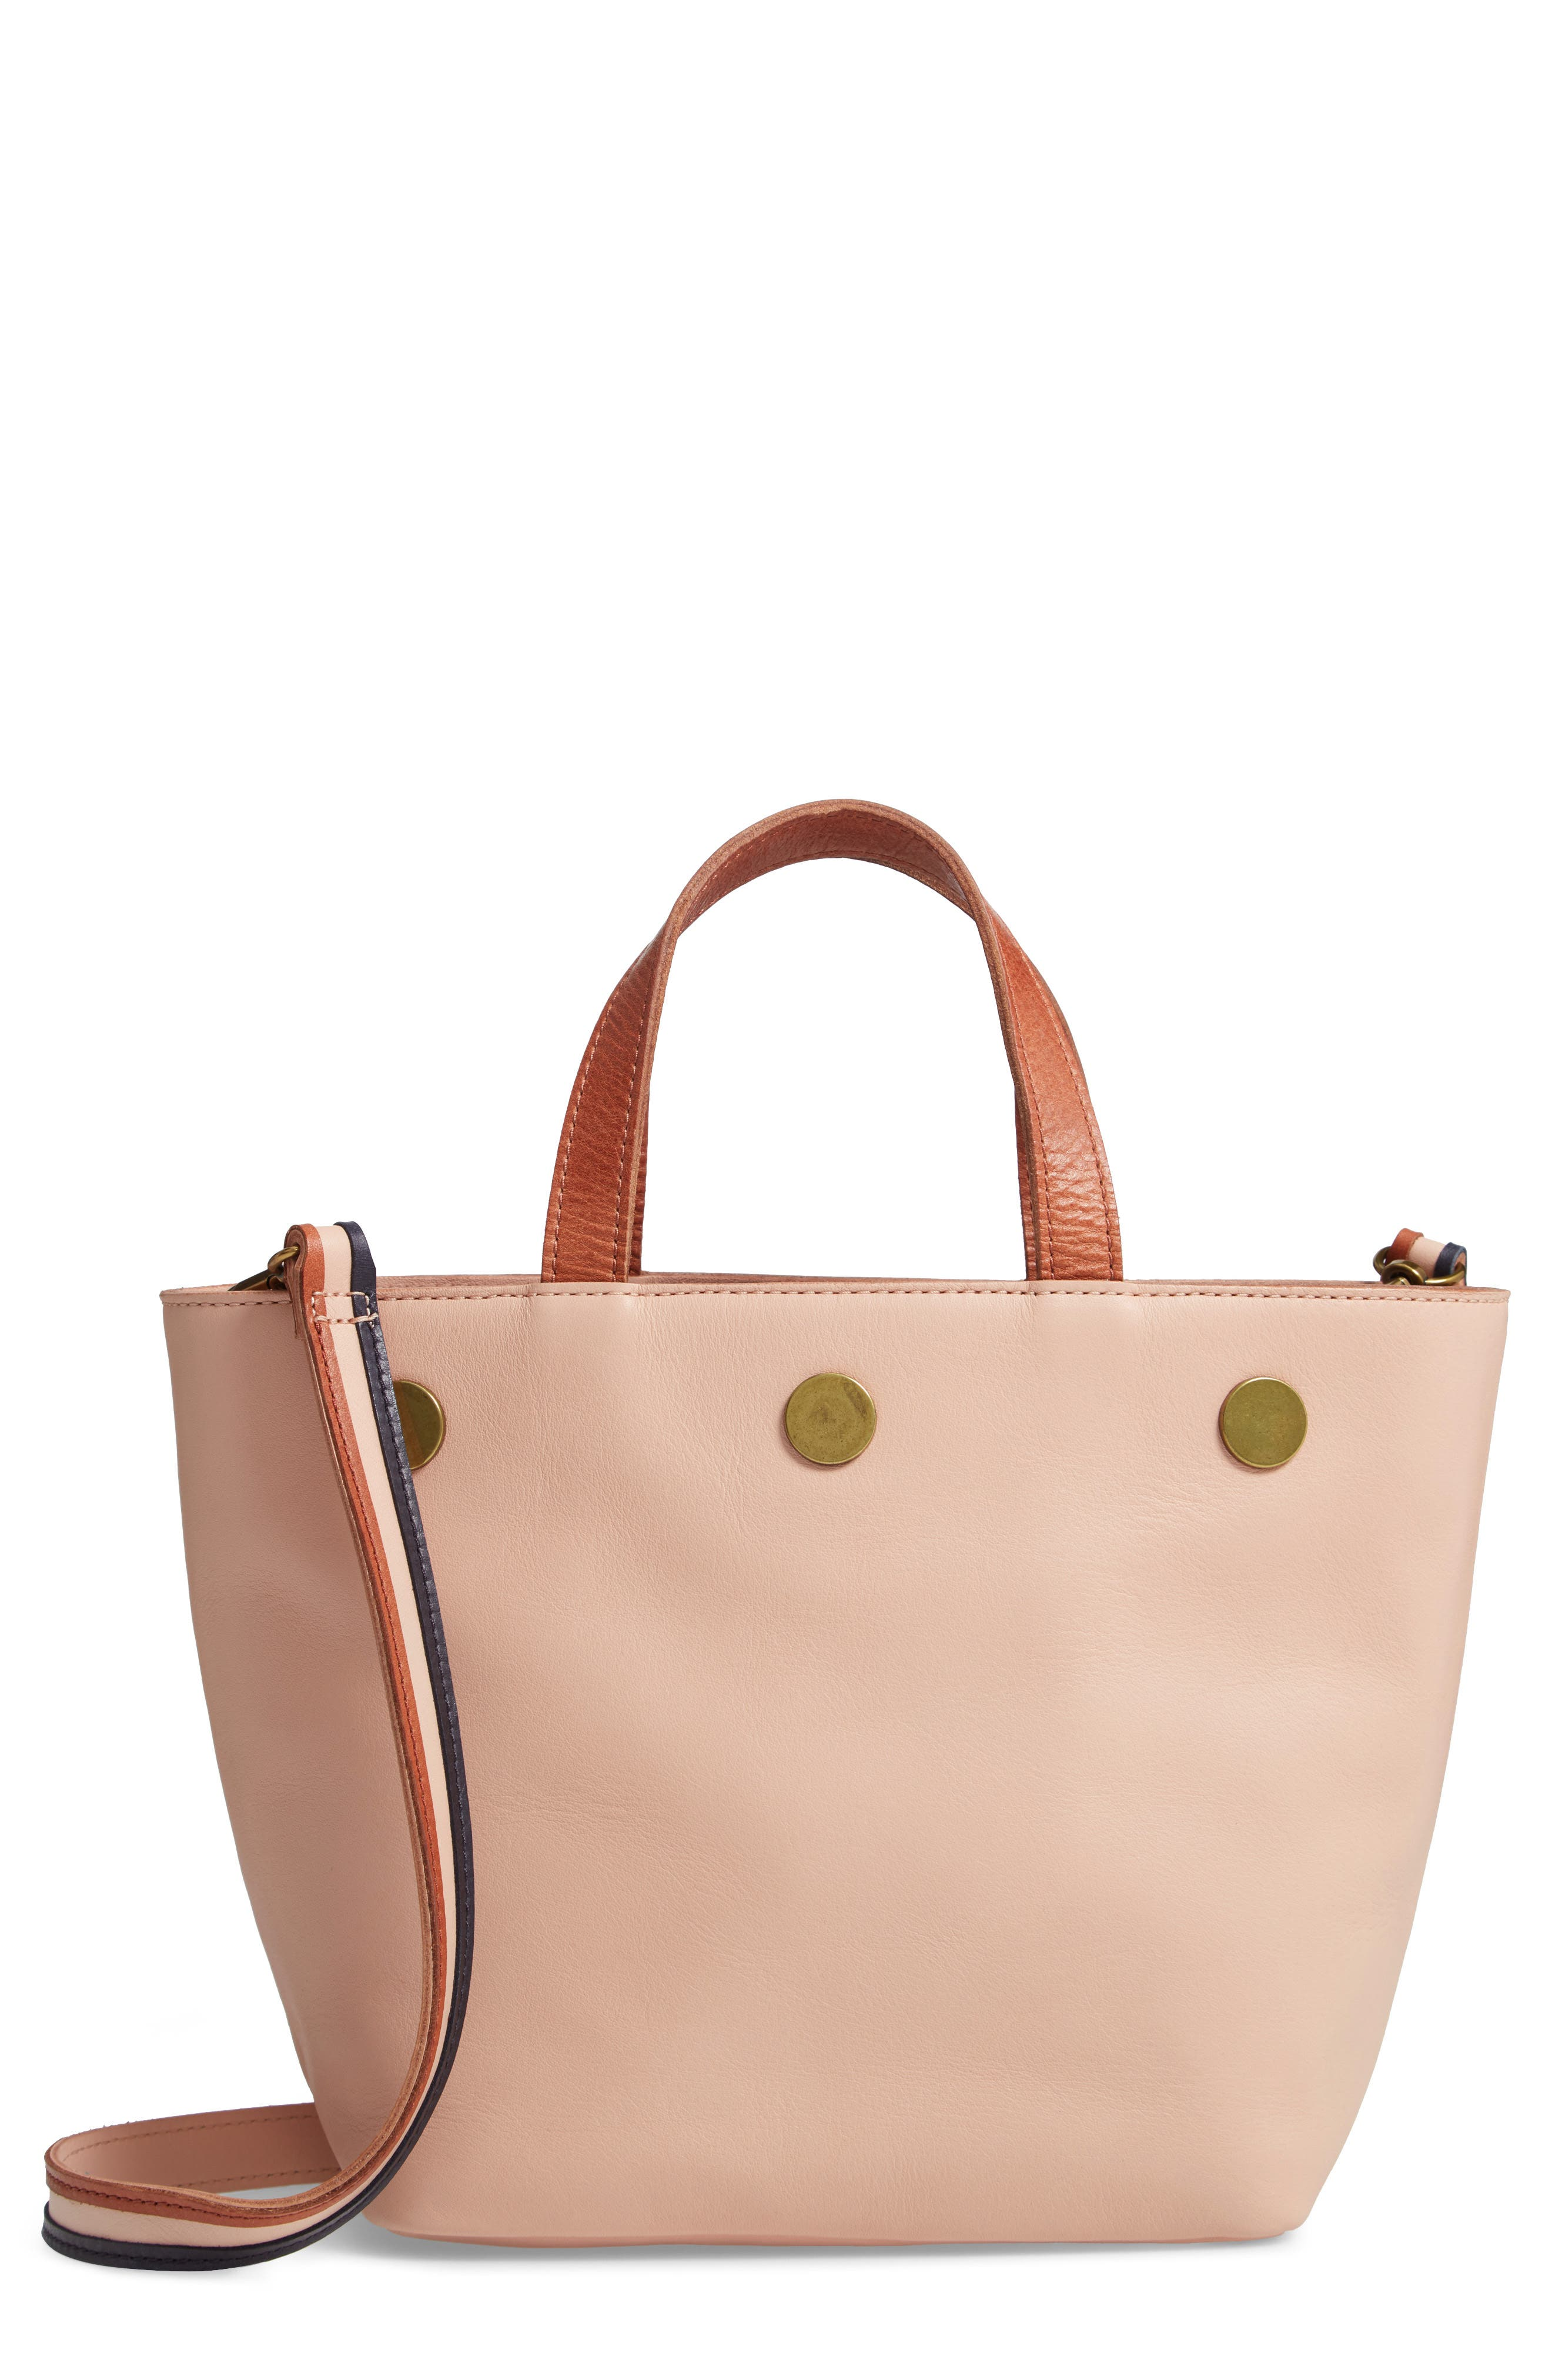 Leather Top Handle Bag,                         Main,                         color, SHEER PINK